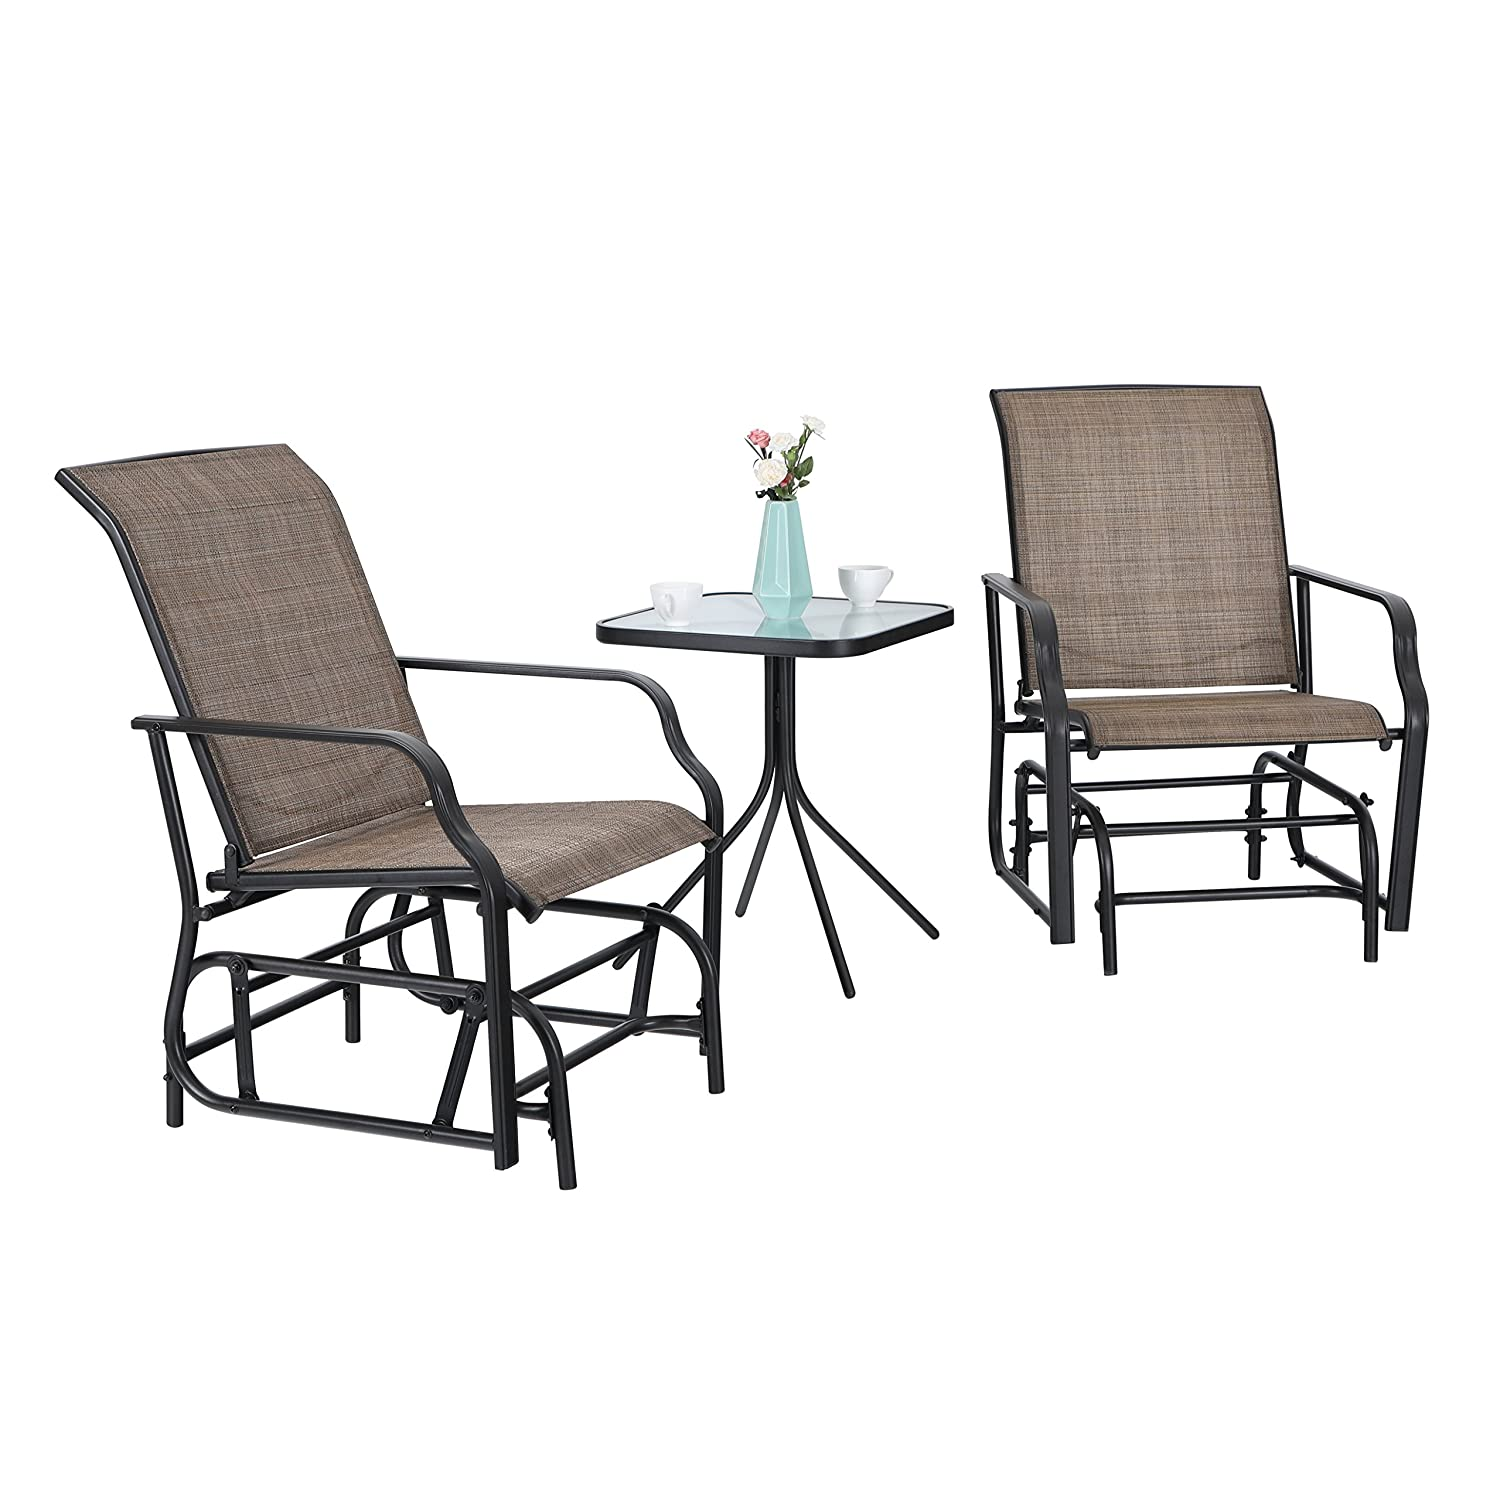 Amazon com phi villa patio swing glider set 3 pc bistro set with 2 rocking chairs 1 table brown garden outdoor